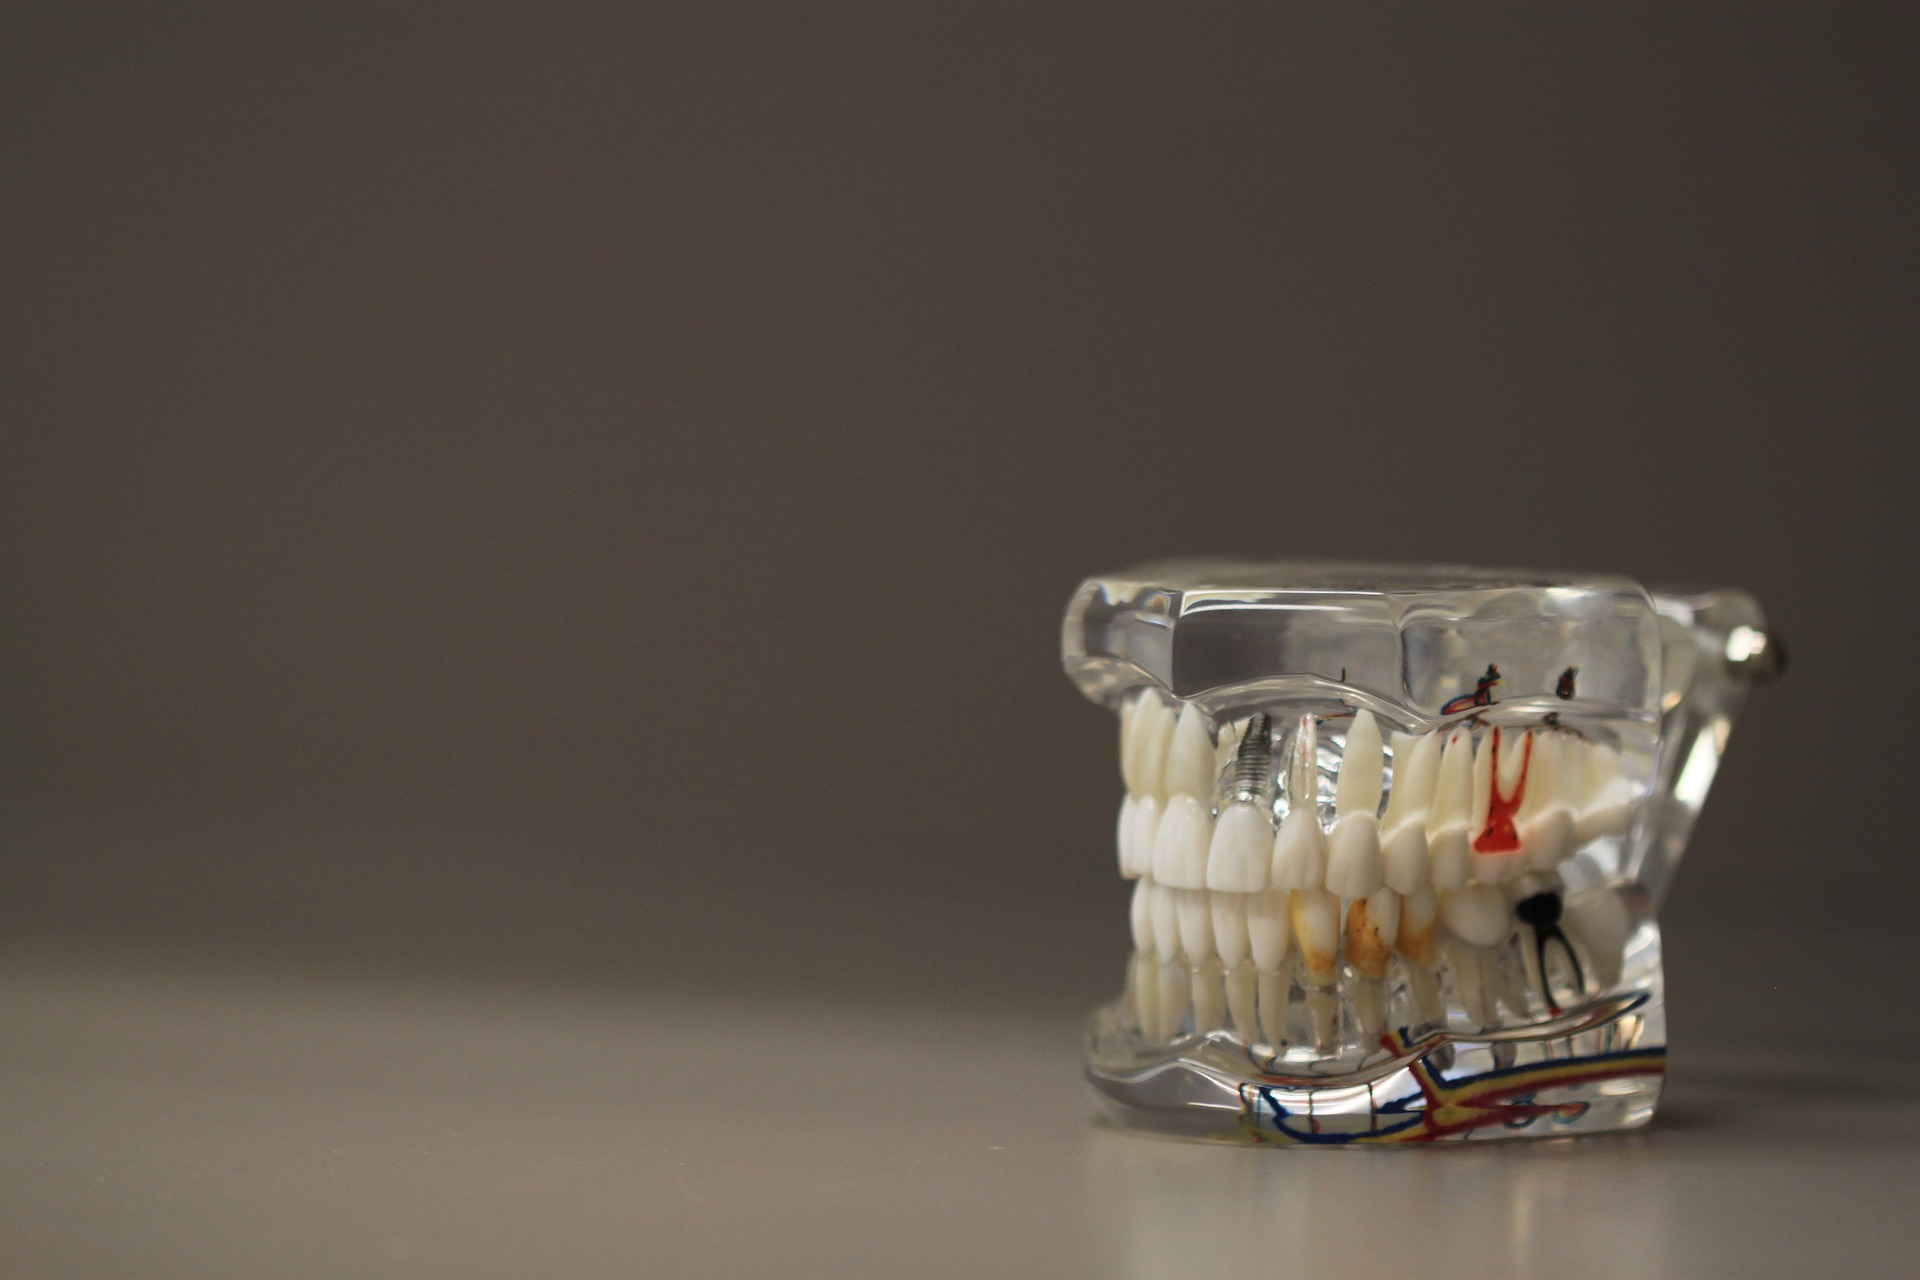 Tips And Care For Those Using Orthodontic Braces